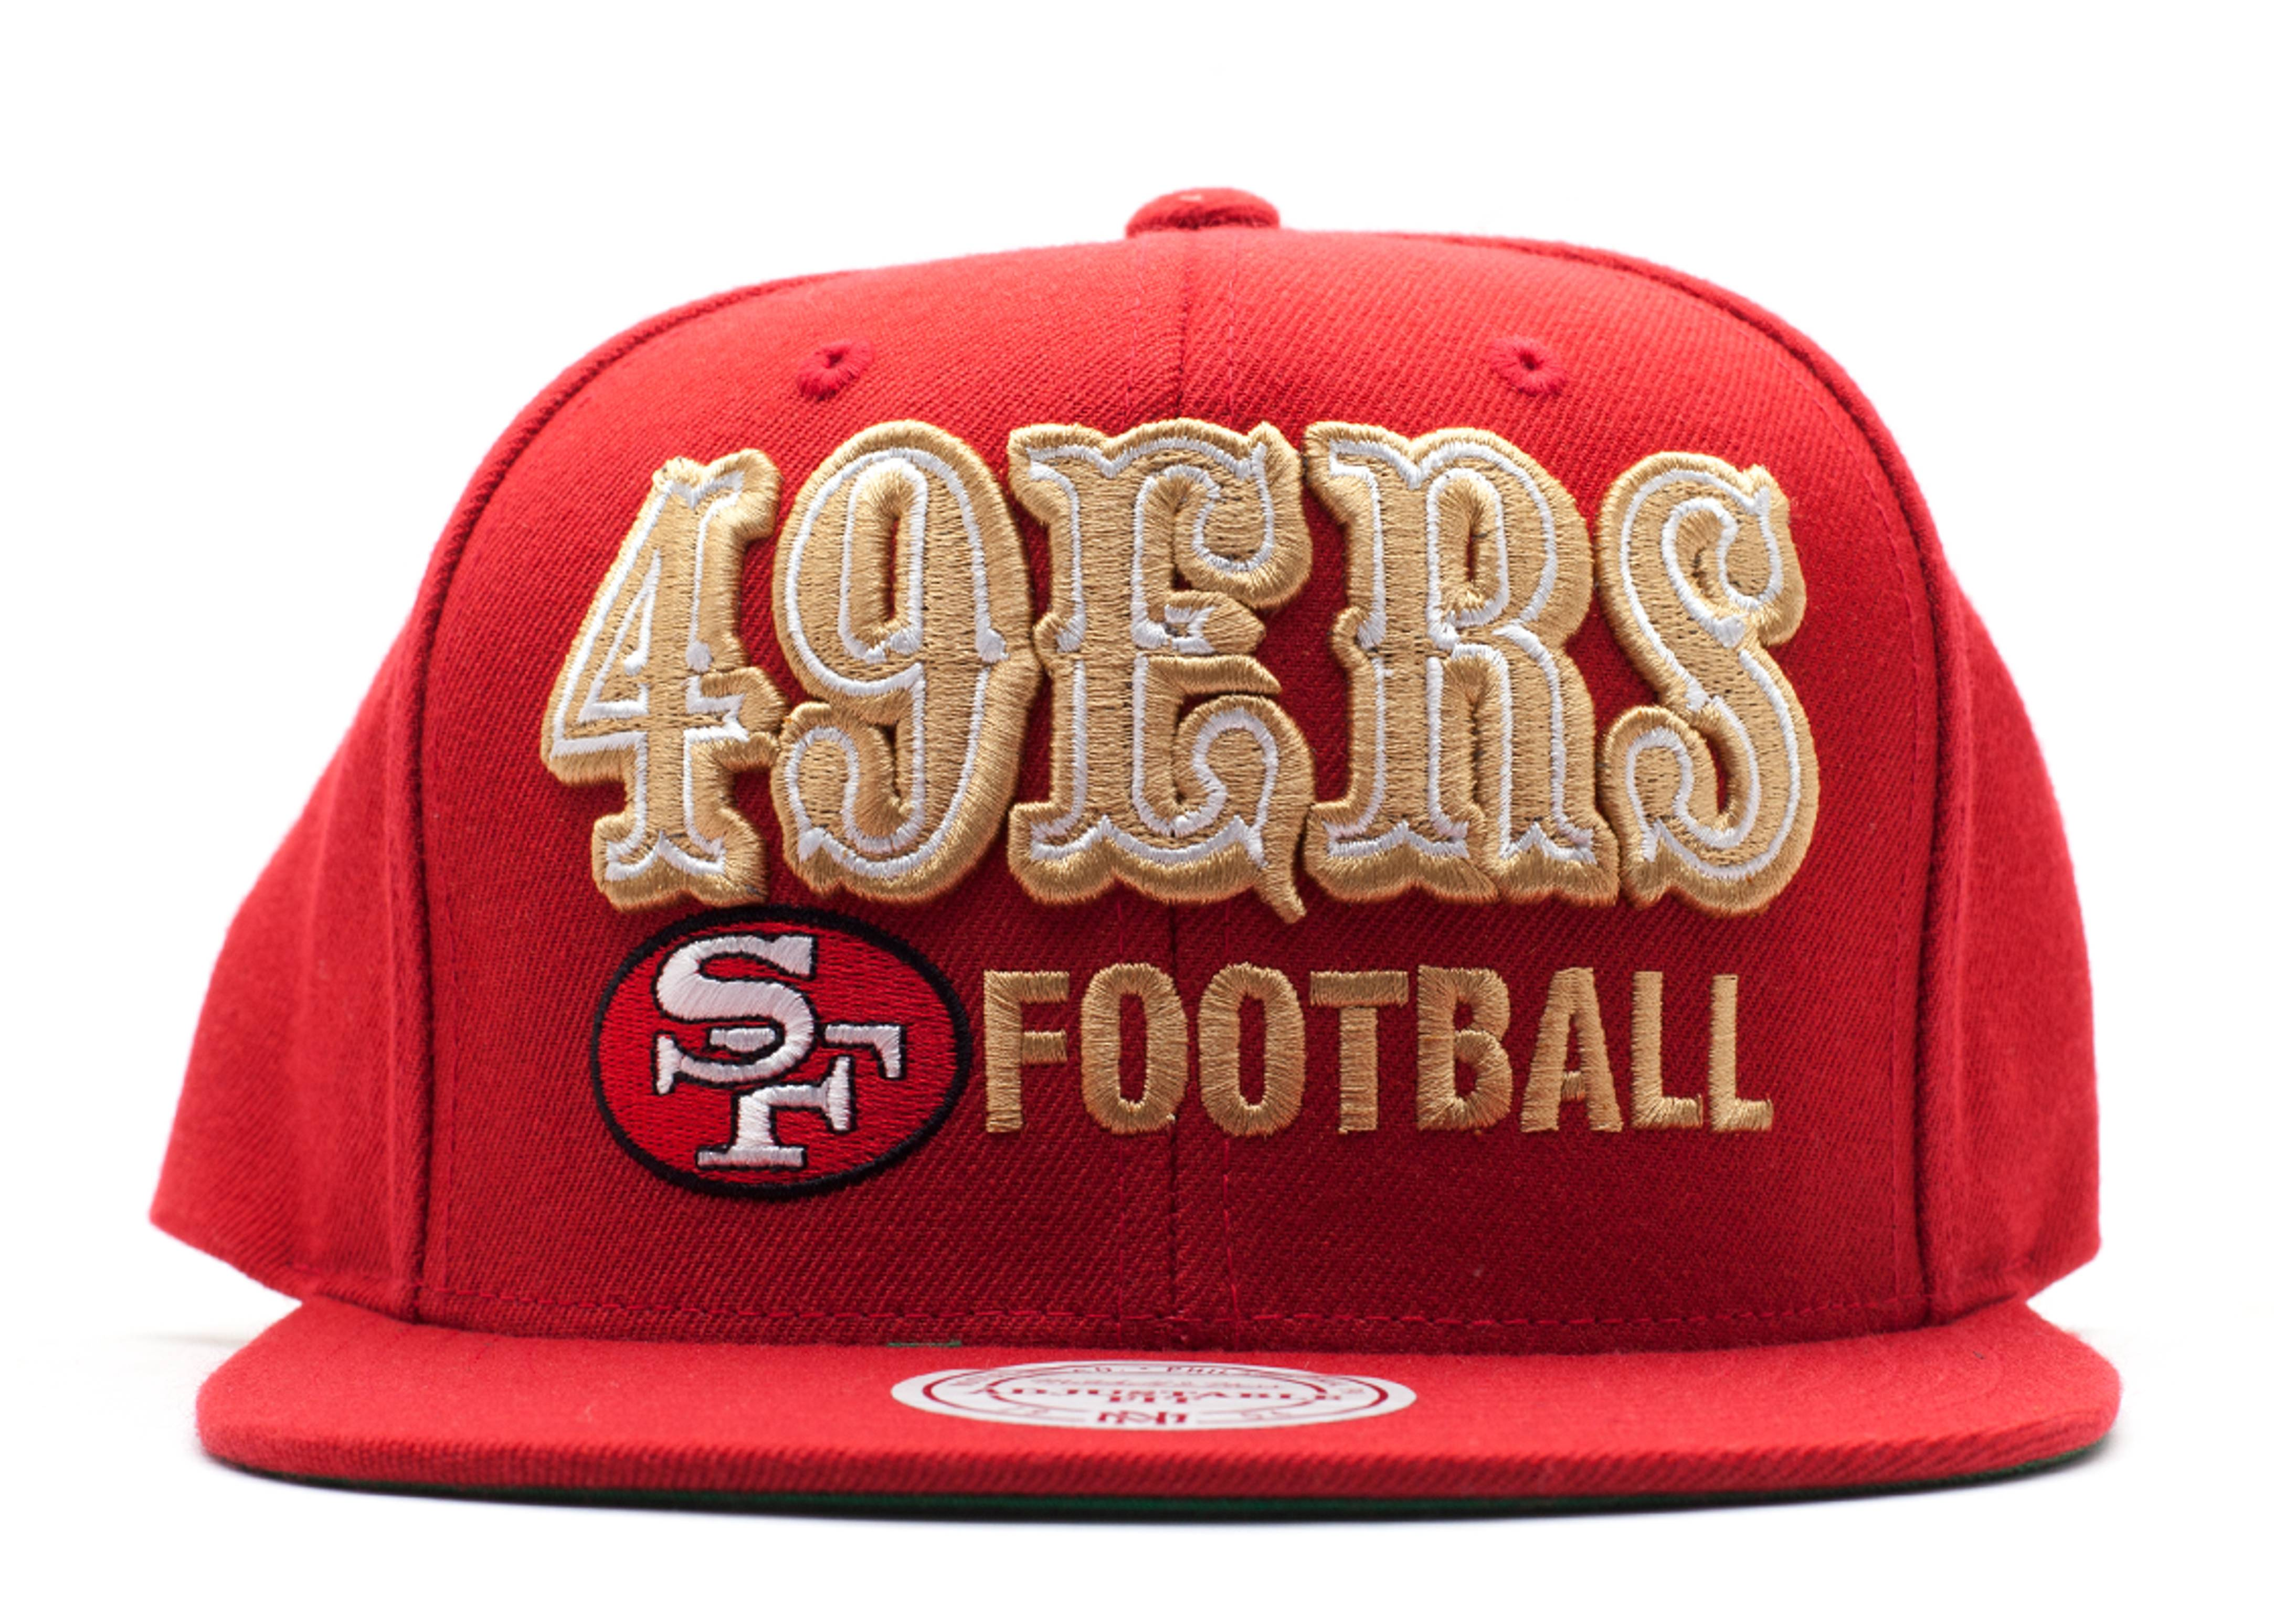 san francisco 49ers snap-back